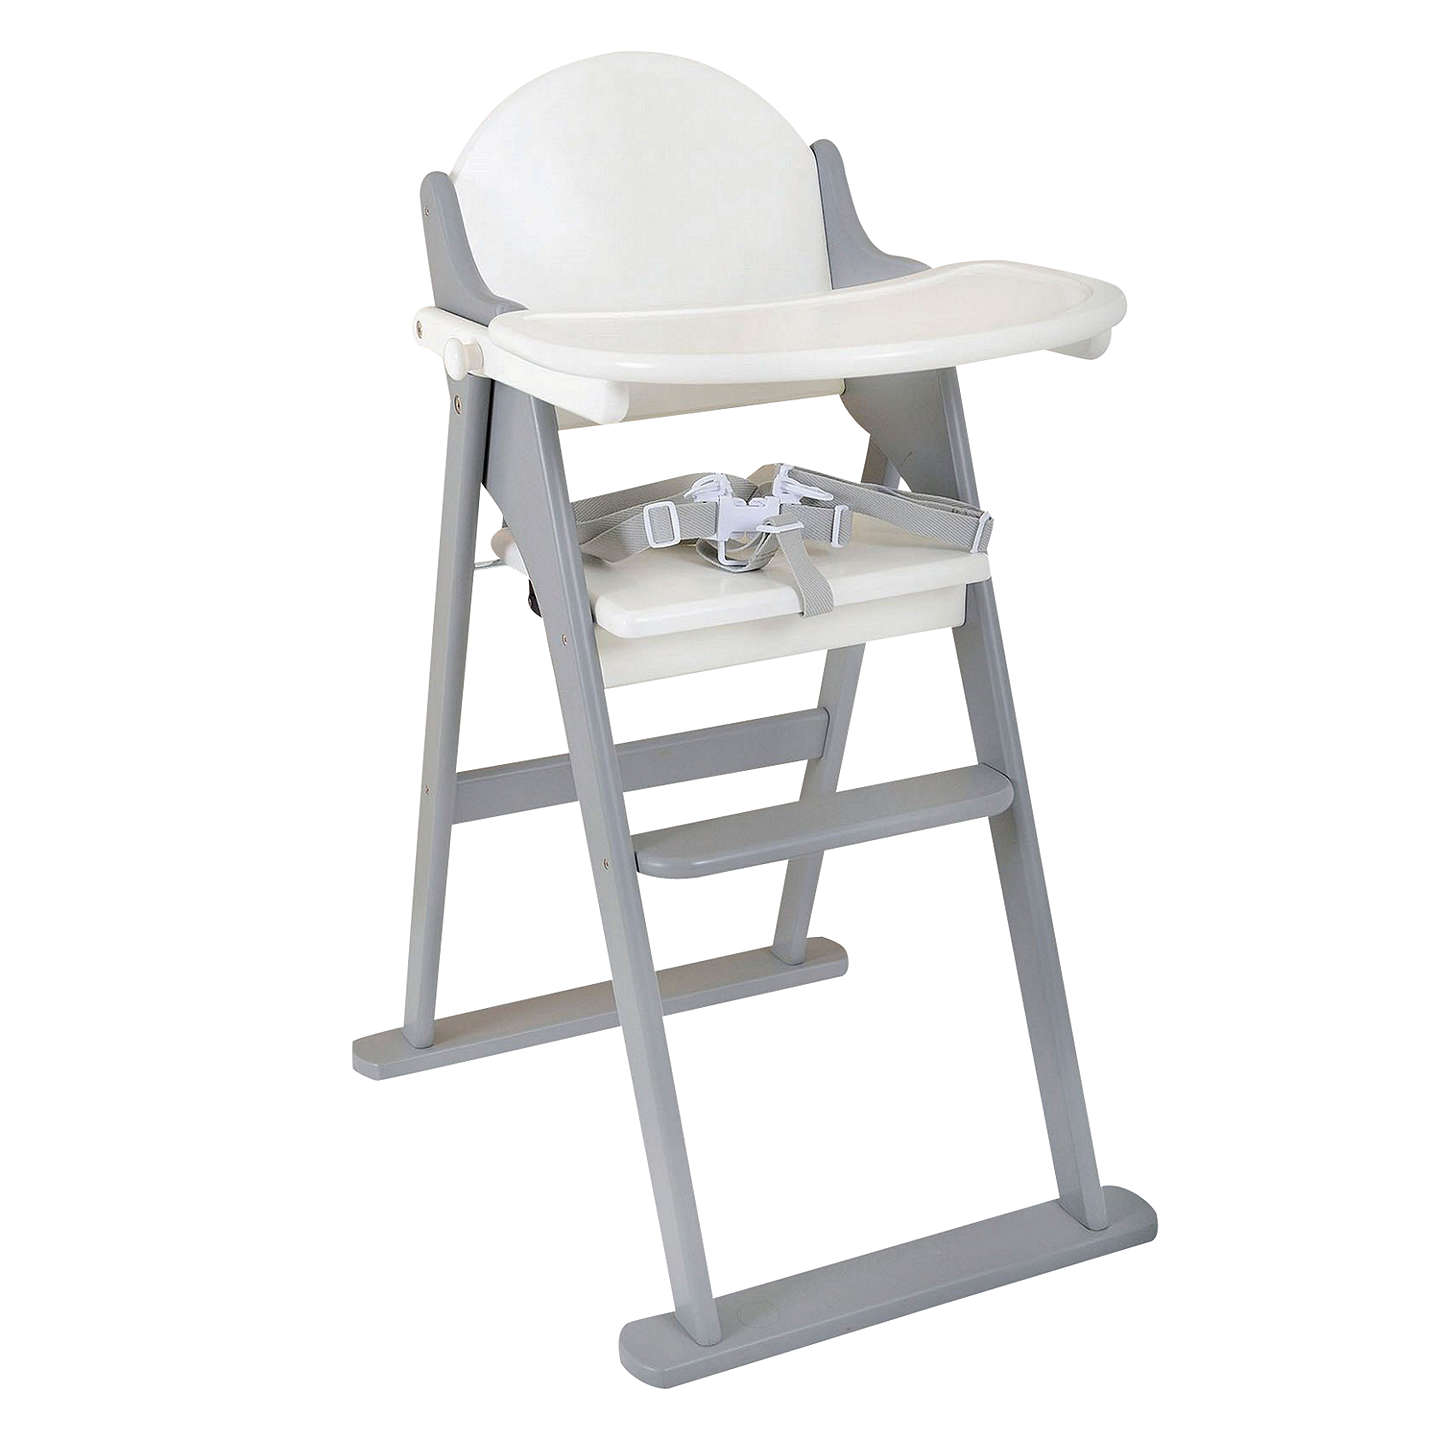 Lovely BuyEast Coast Folding Highchair, Grey/White Online At Johnlewis.com ...